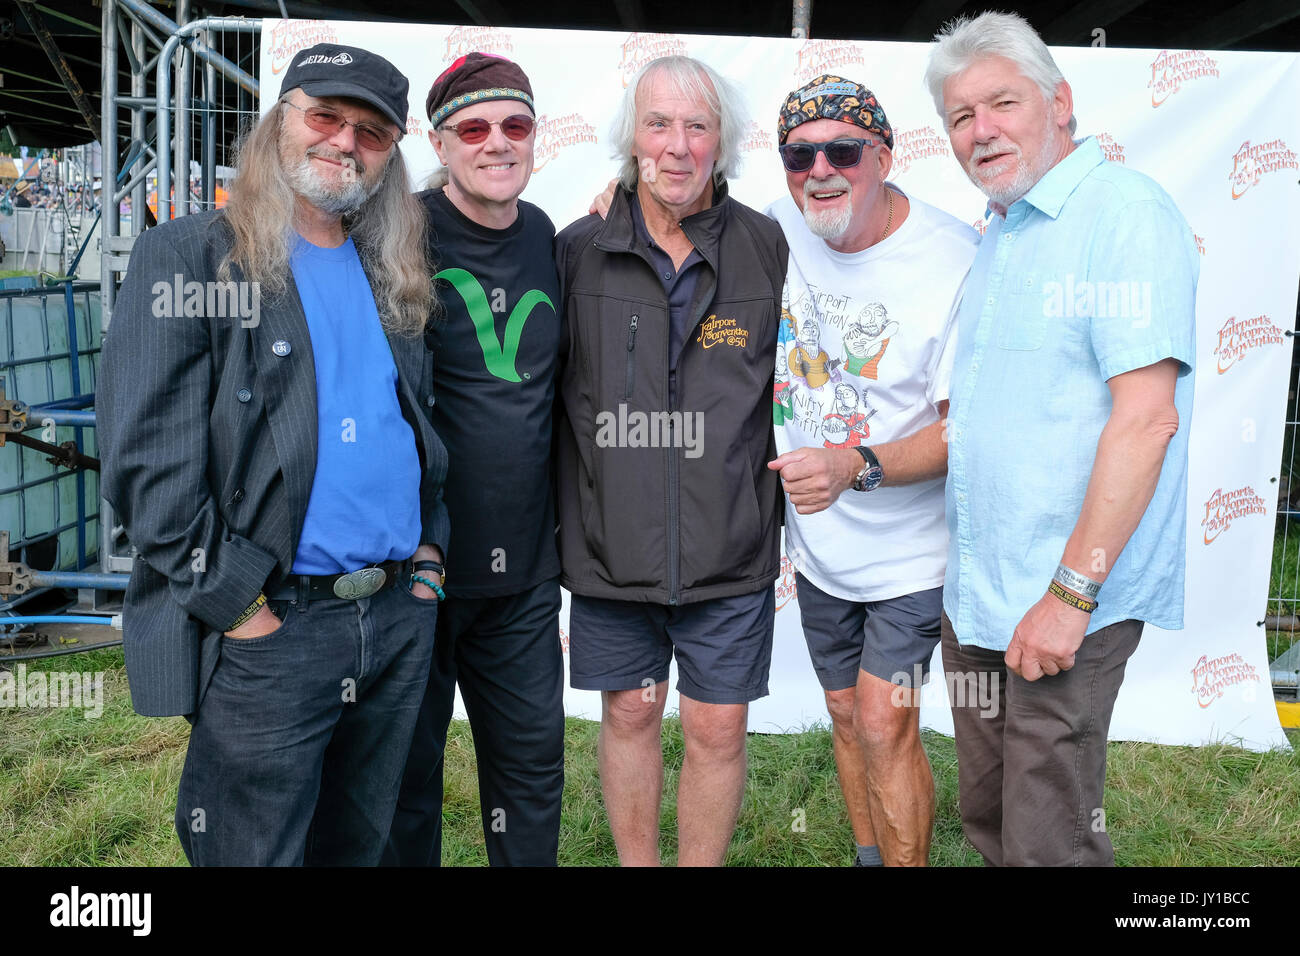 Fairport Convention backstage at Fairport's Cropredy Convention, Banbury, Oxfordshire, England, August 12, 2017 - Stock Image